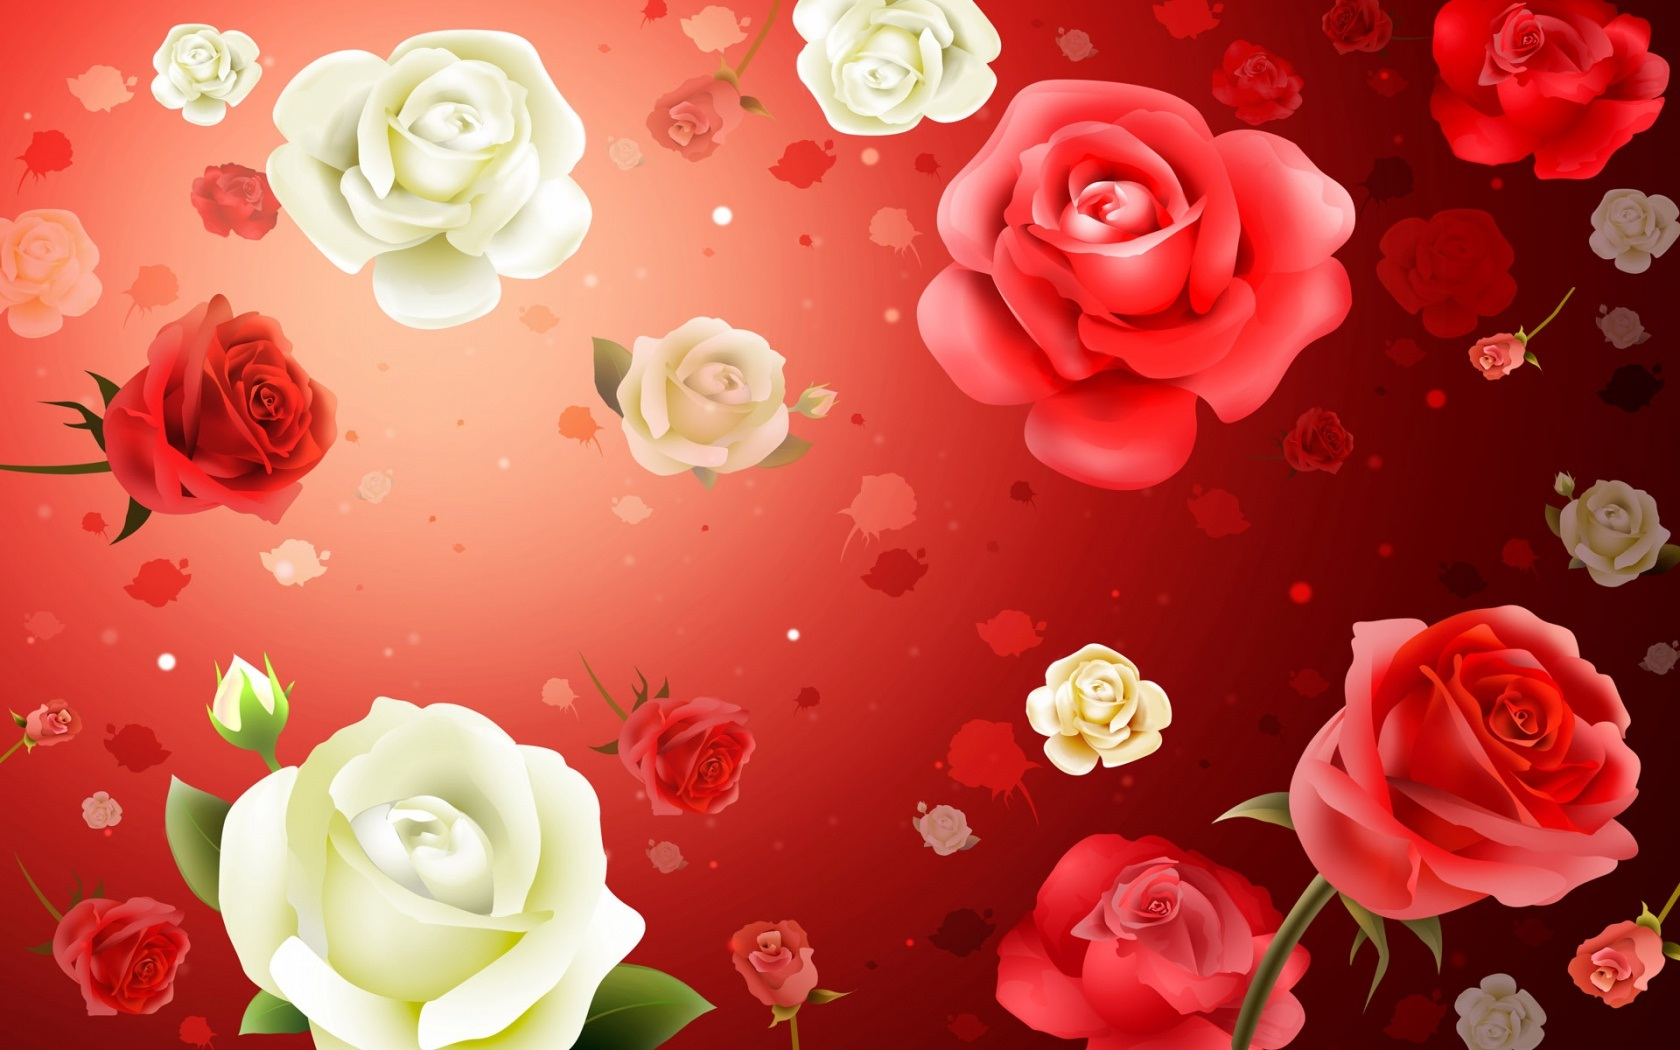 Beautiful flowers wallpapers hd wallpapers images pictures 1680x1050 izmirmasajfo